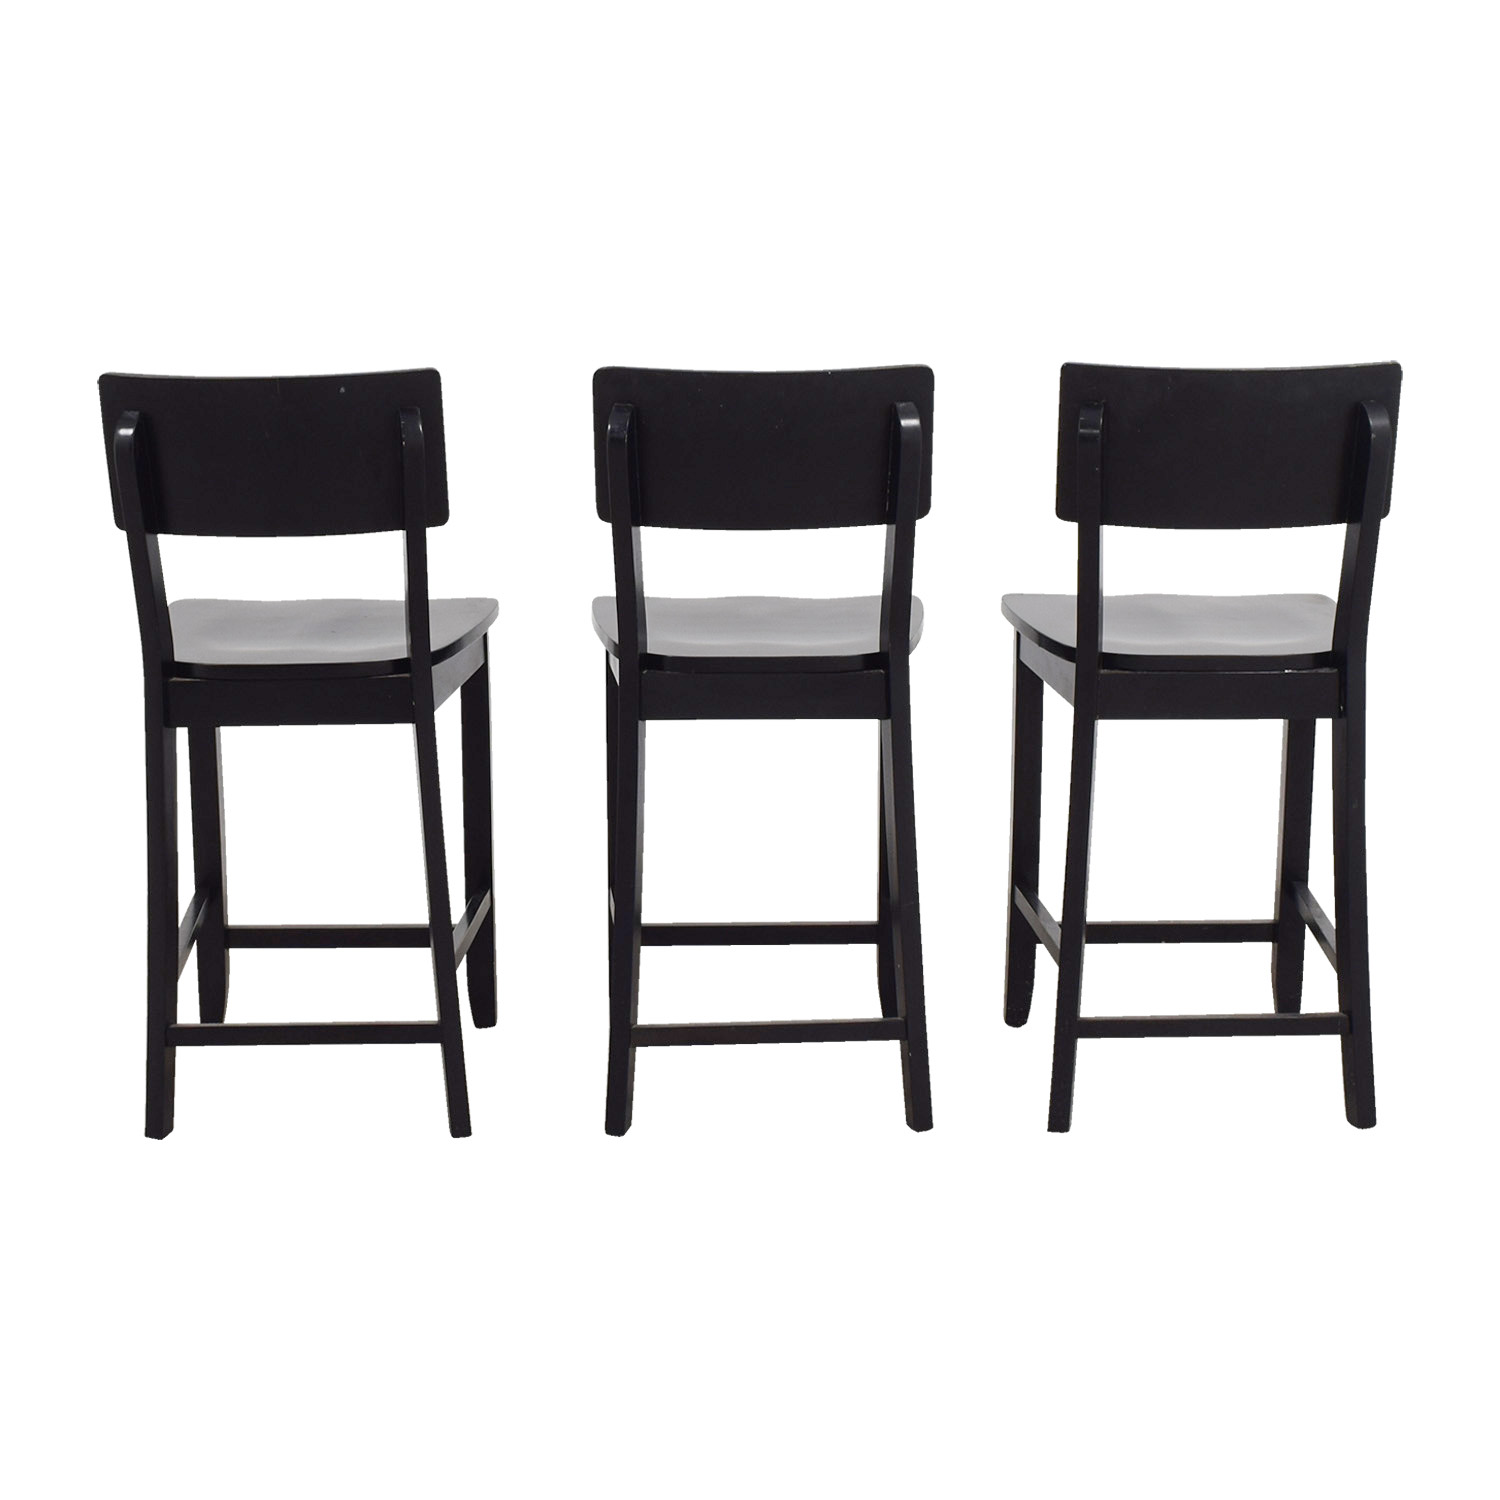 Crate & Barrel Crate & Barrel Black Wood Bar Stools discount